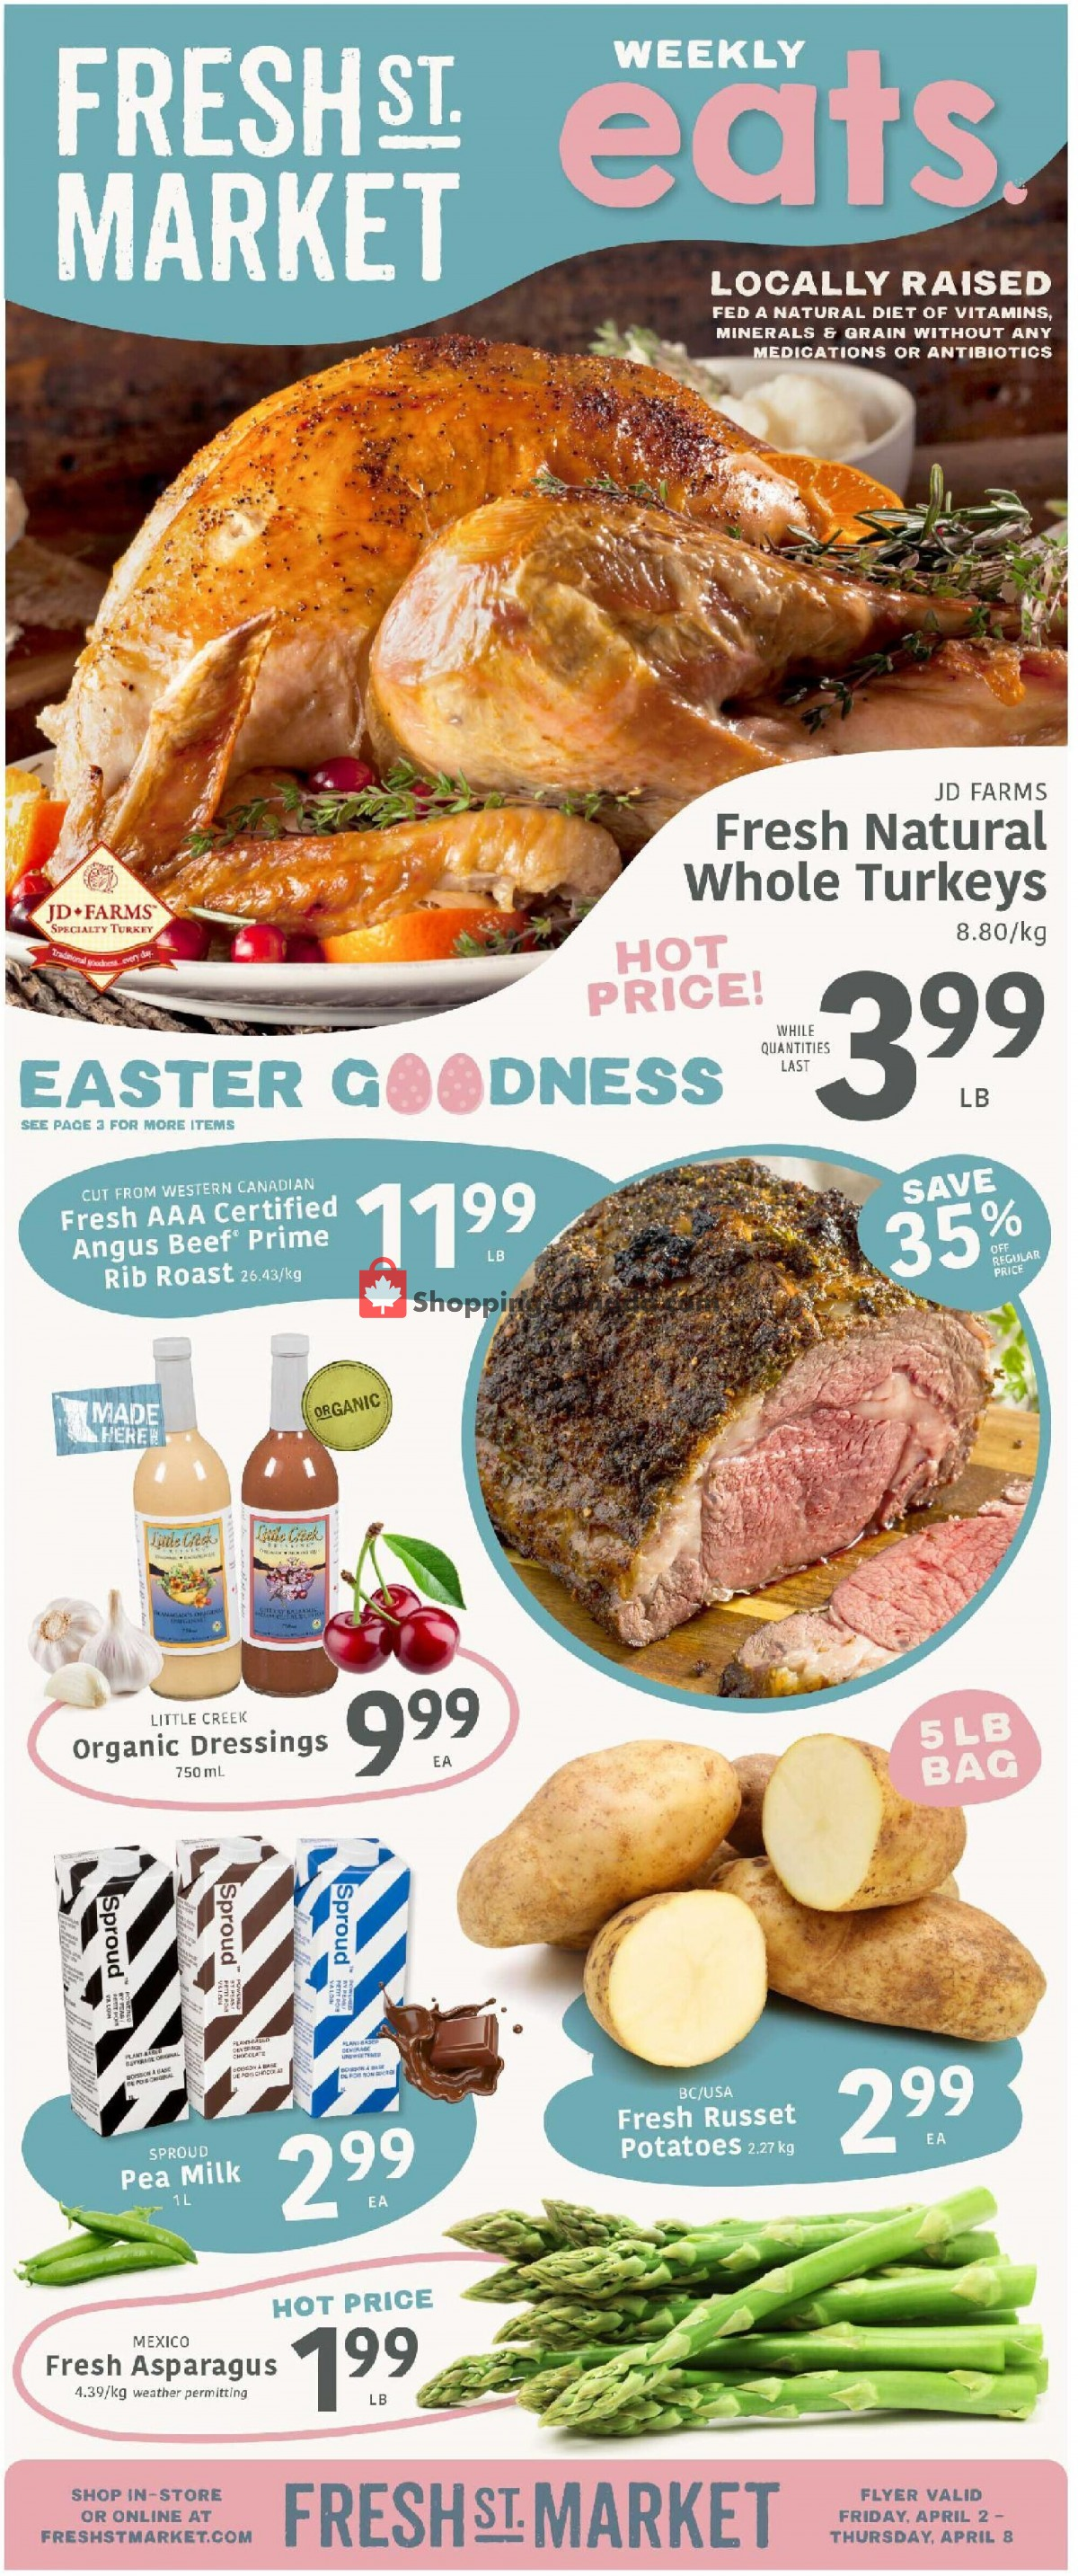 Flyer Fresh St. Market Canada - from Friday April 2, 2021 to Thursday April 8, 2021